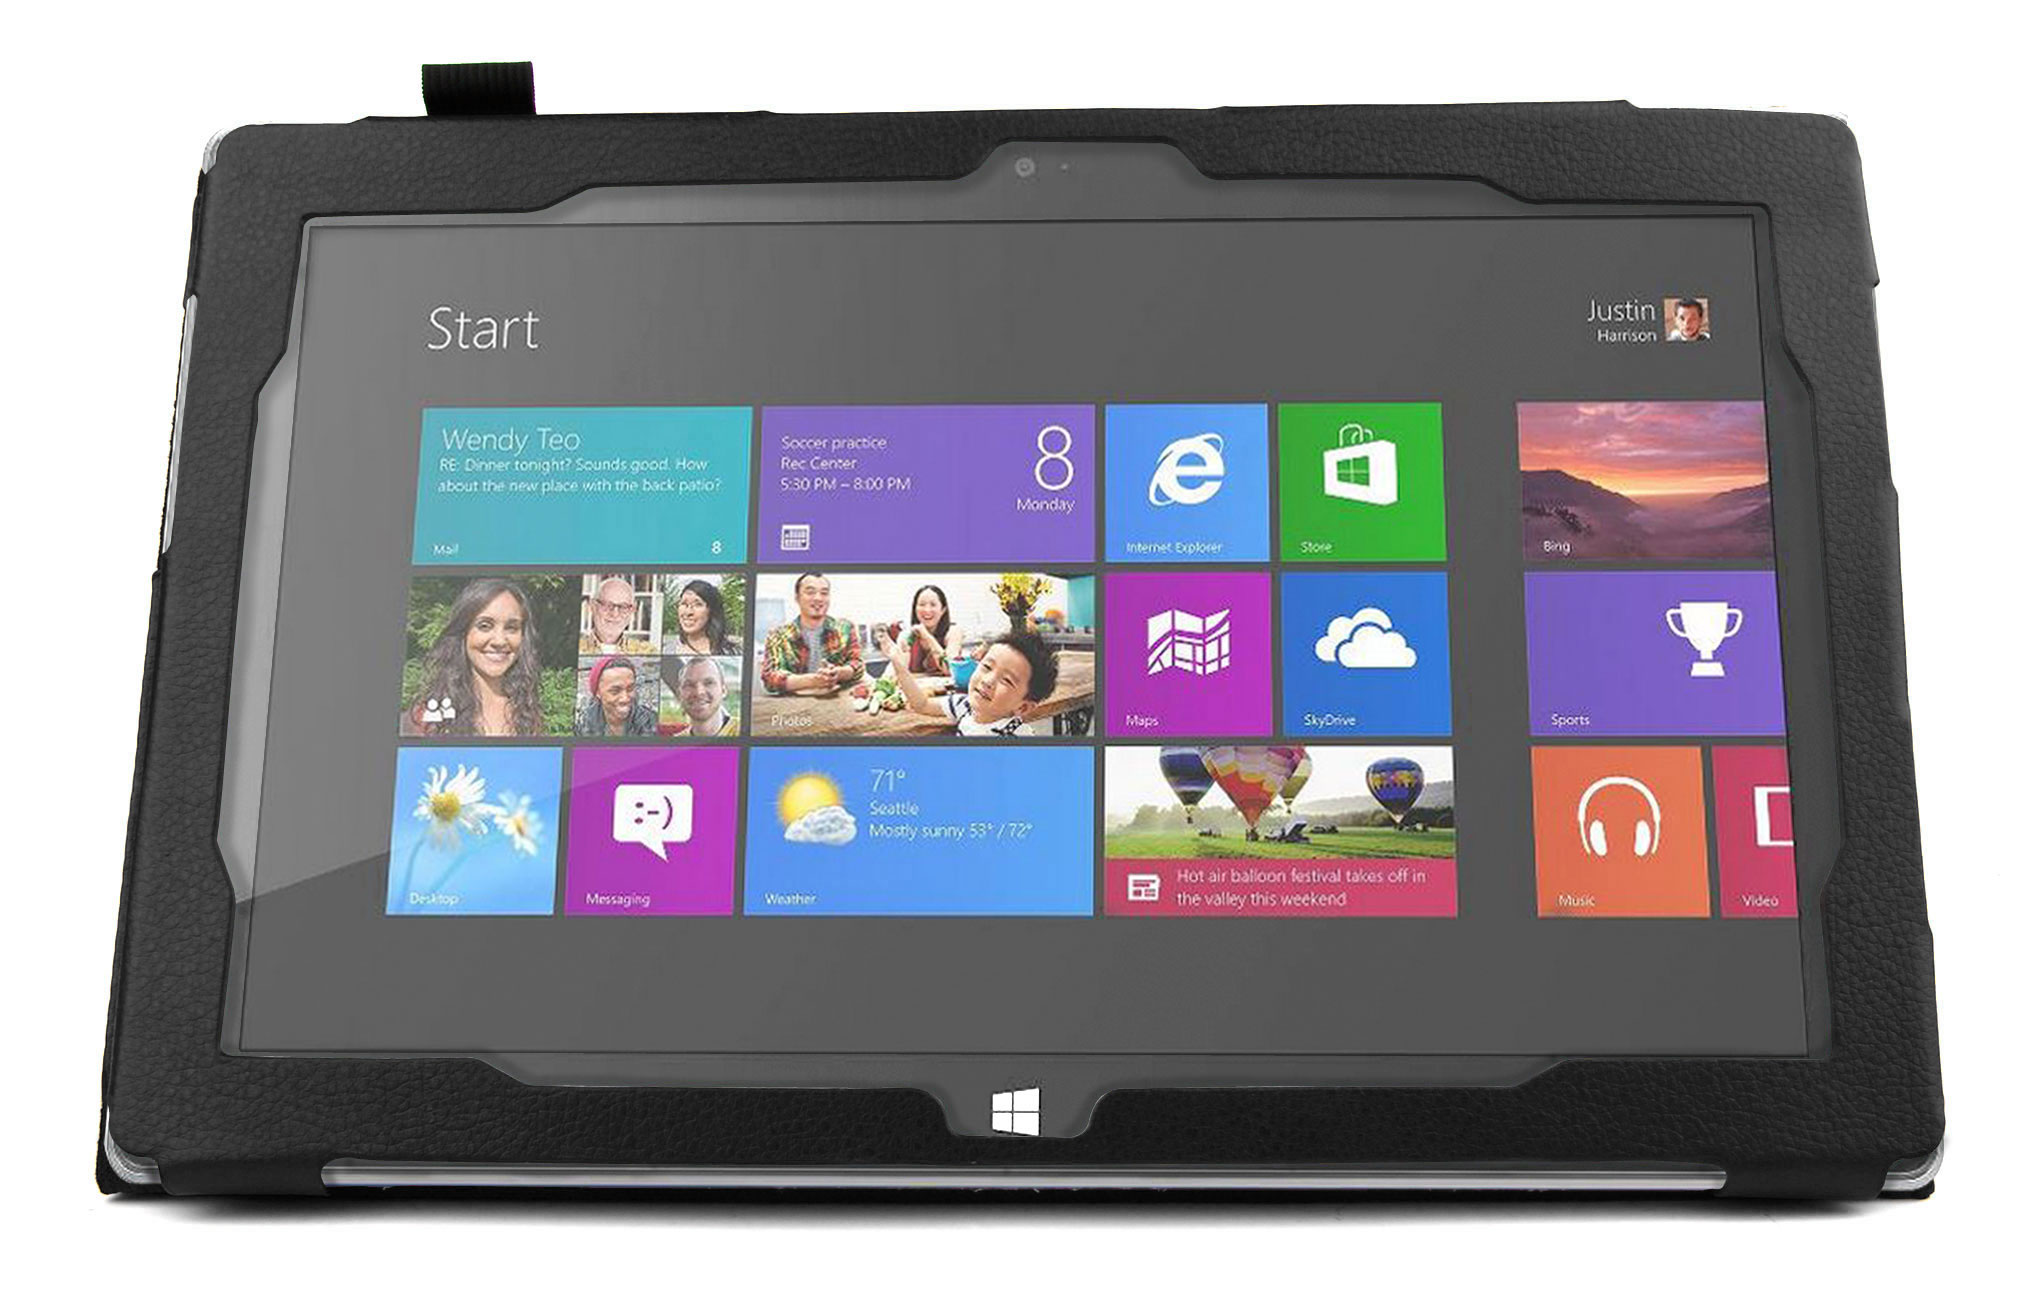 Microsoft Office Pour Tablette Etui Noir Pour Microsoft Surface 2 Windows Rt 8 1